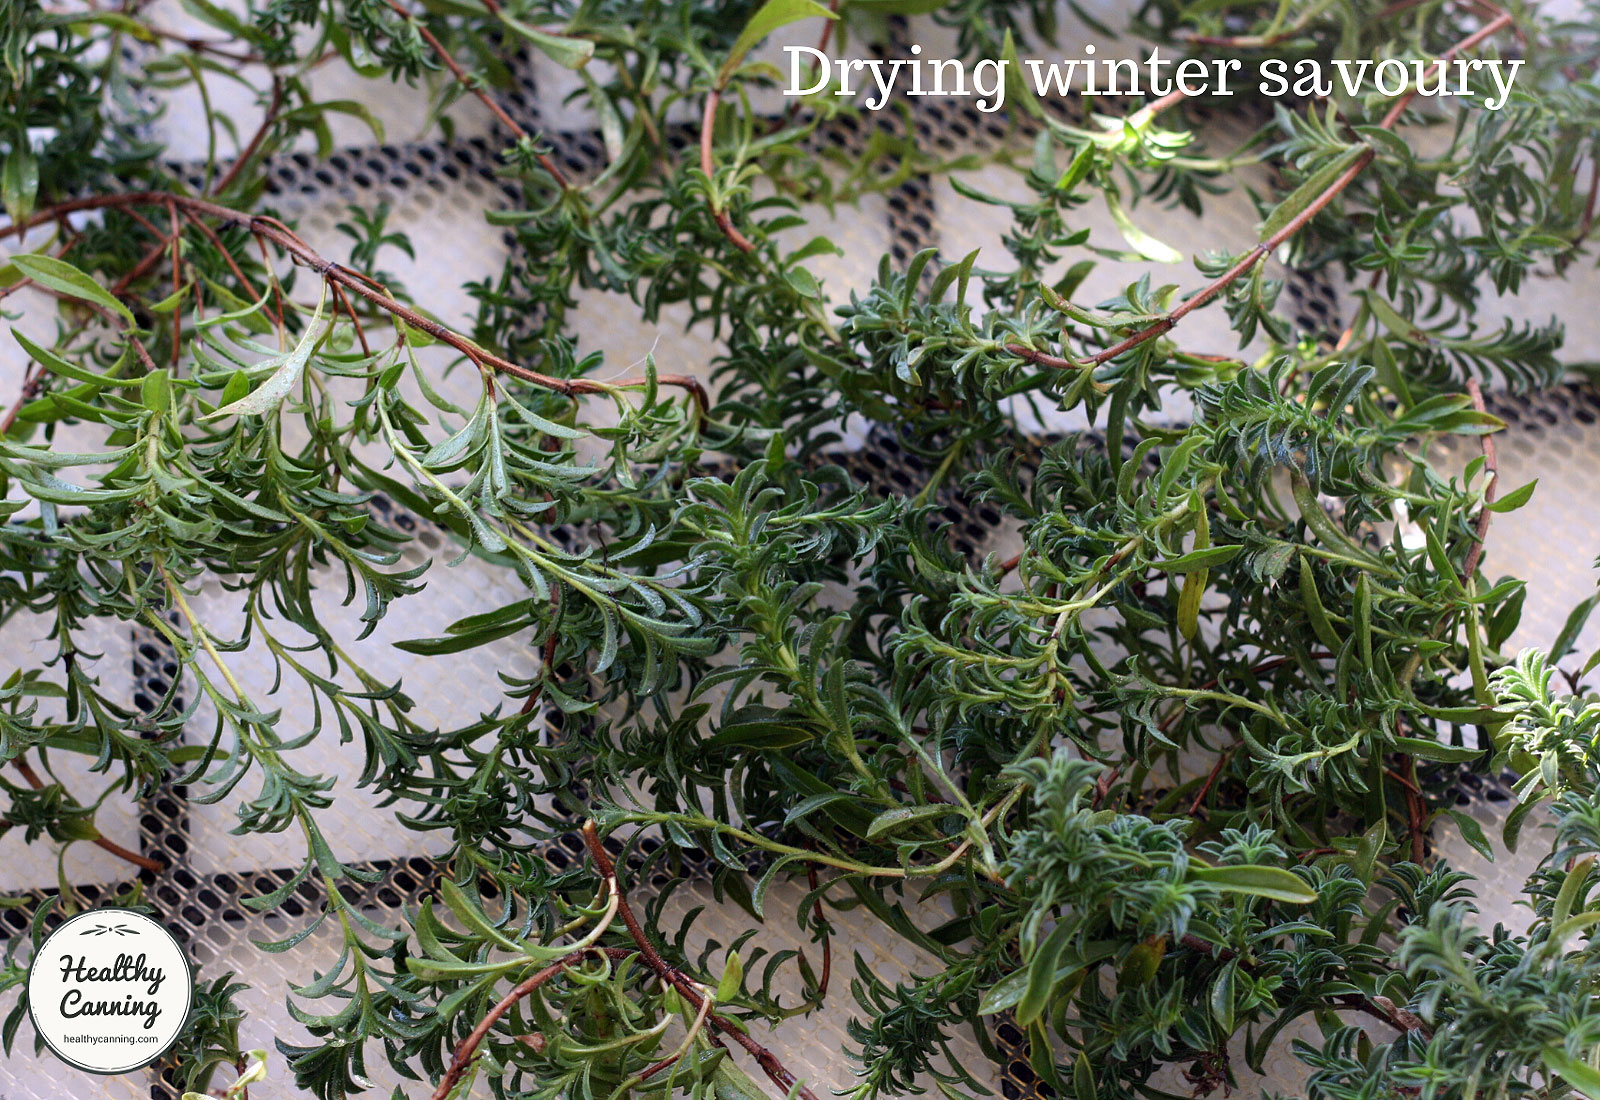 Winter savoury on tray reading for drying